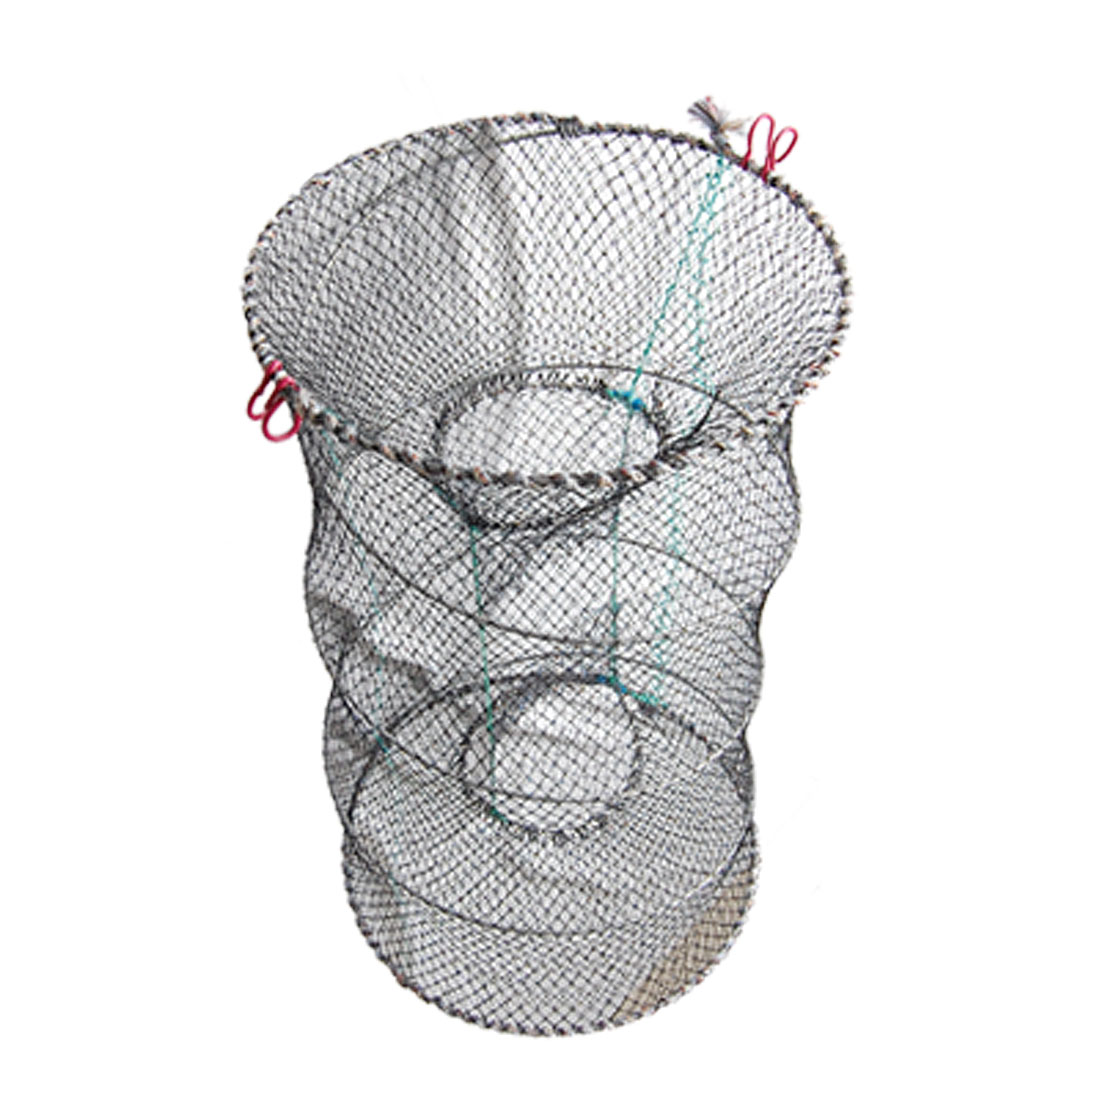 Nylon Crawfish Shrimp Crab Double Entrance Fishing Net Black